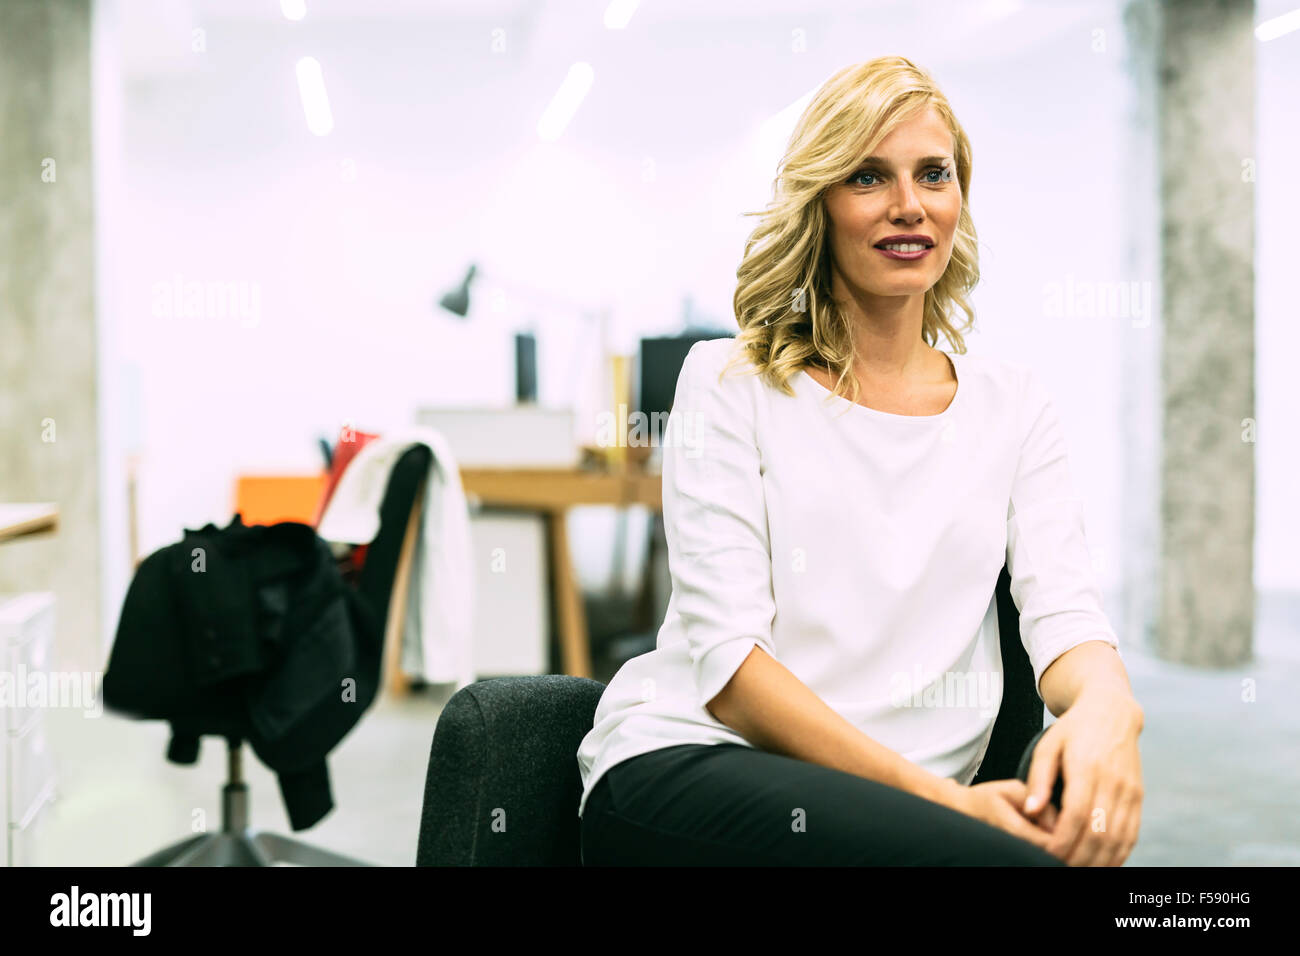 Beautiful blonde businesswoman sitting in an office with legs crossed - Stock Image